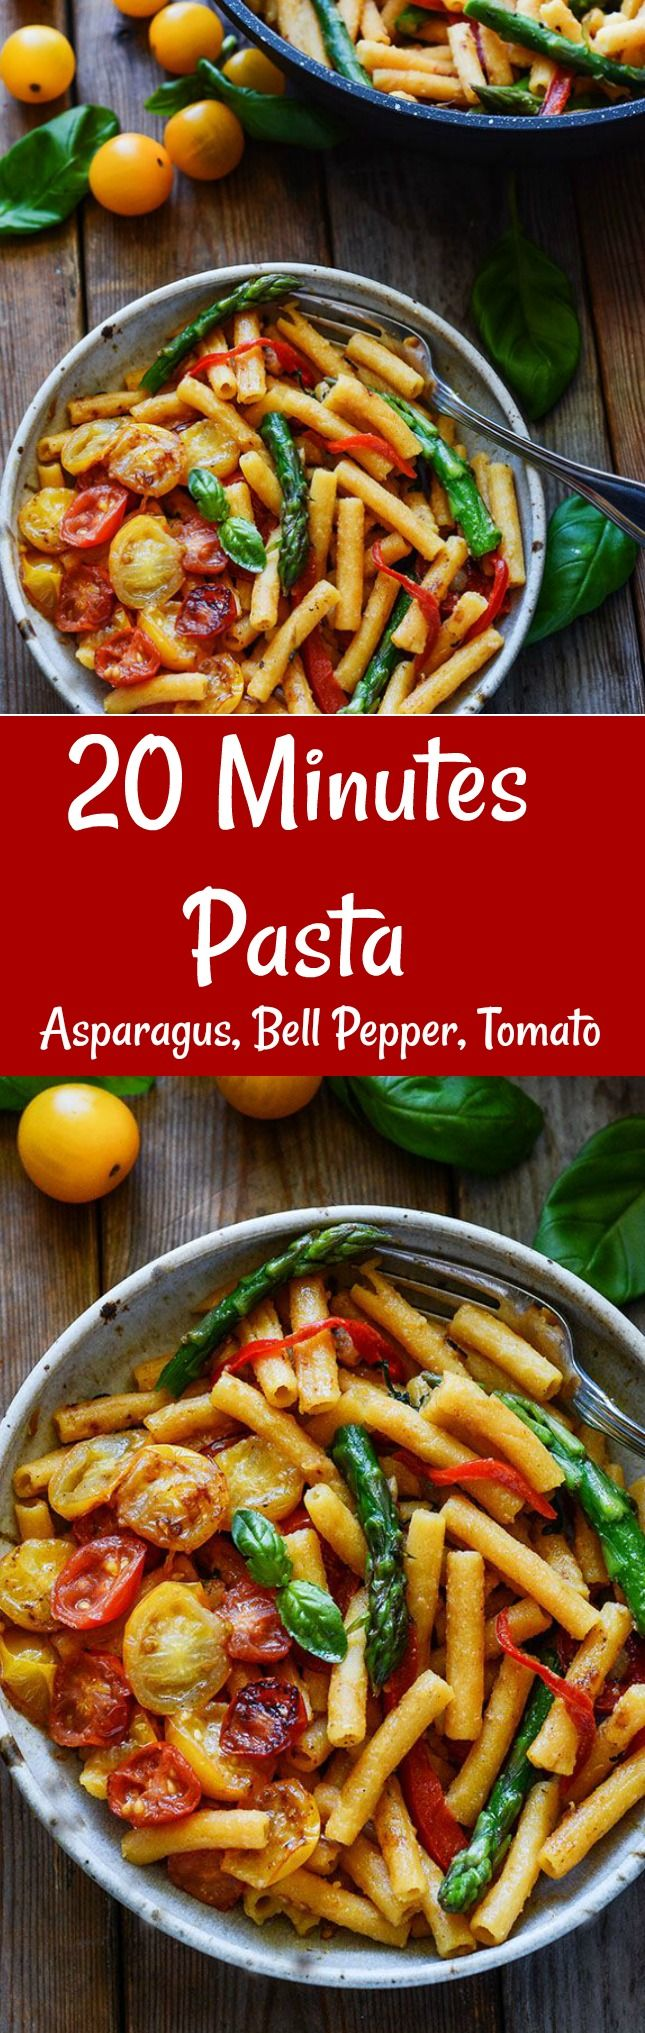 20 Minute Pasta with Asparagus, Bell Peppers and Tomatoes, so fresh and flavorful, vegan and gluten-freee